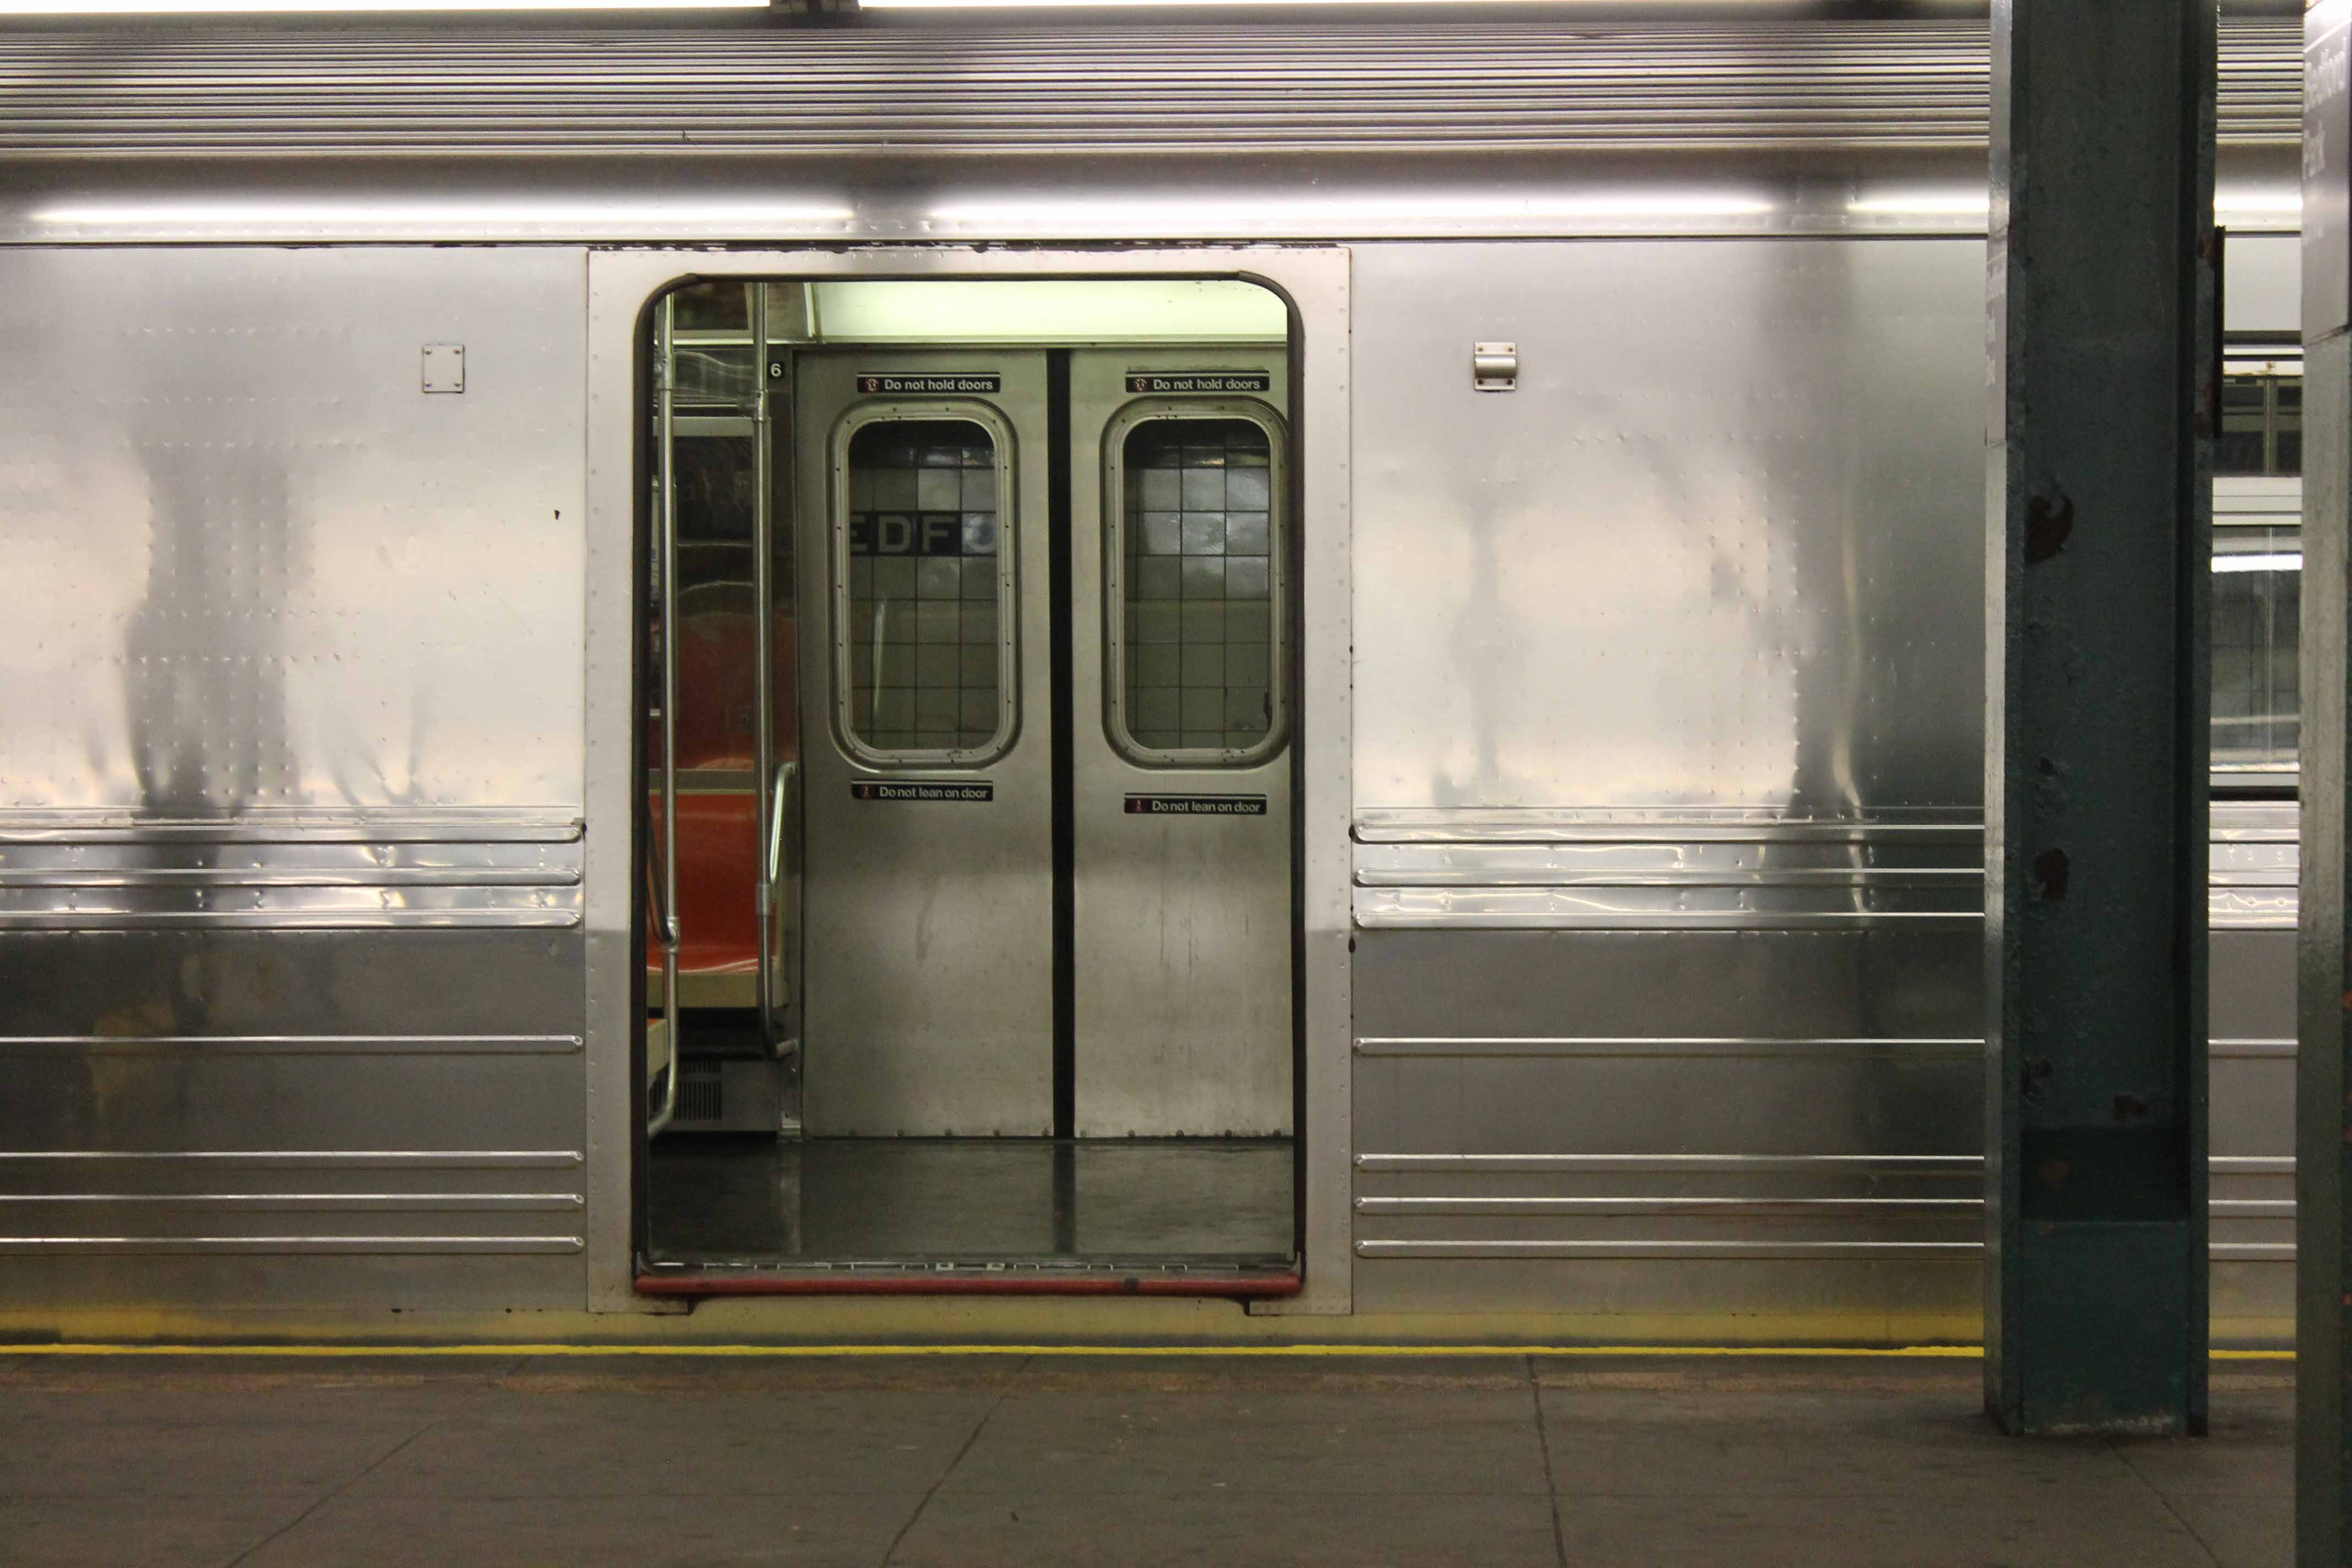 As of March 19th, 2017, all weekly NYC MTA subway fares have increased in price.